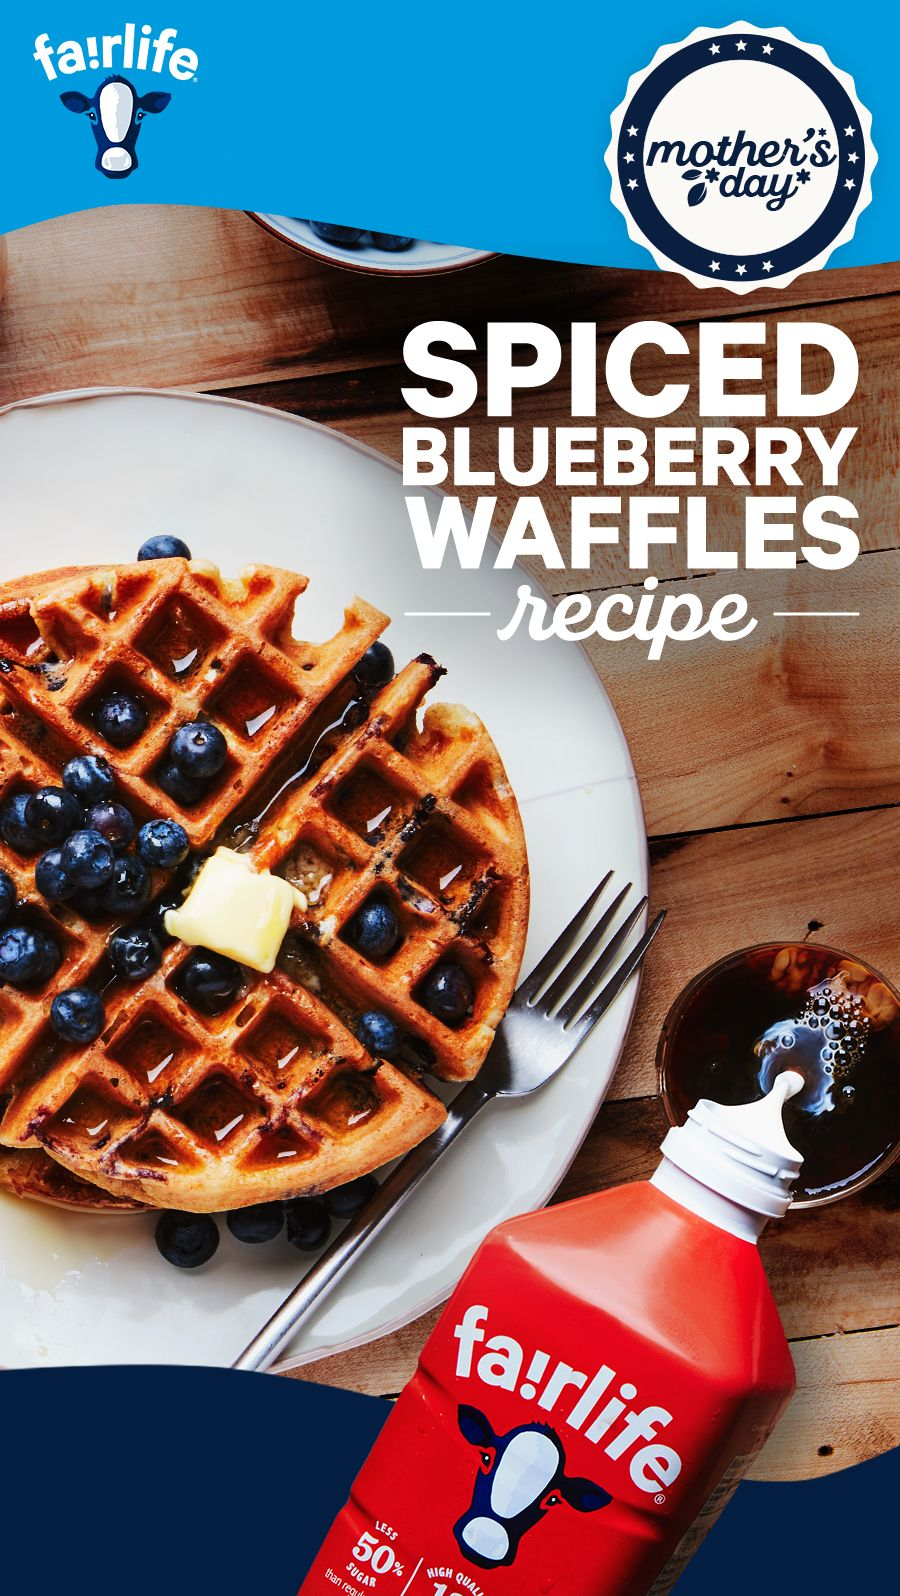 Enrich These Spiced Blueberry Waffles with fairlife Ultra-Filtered Milk